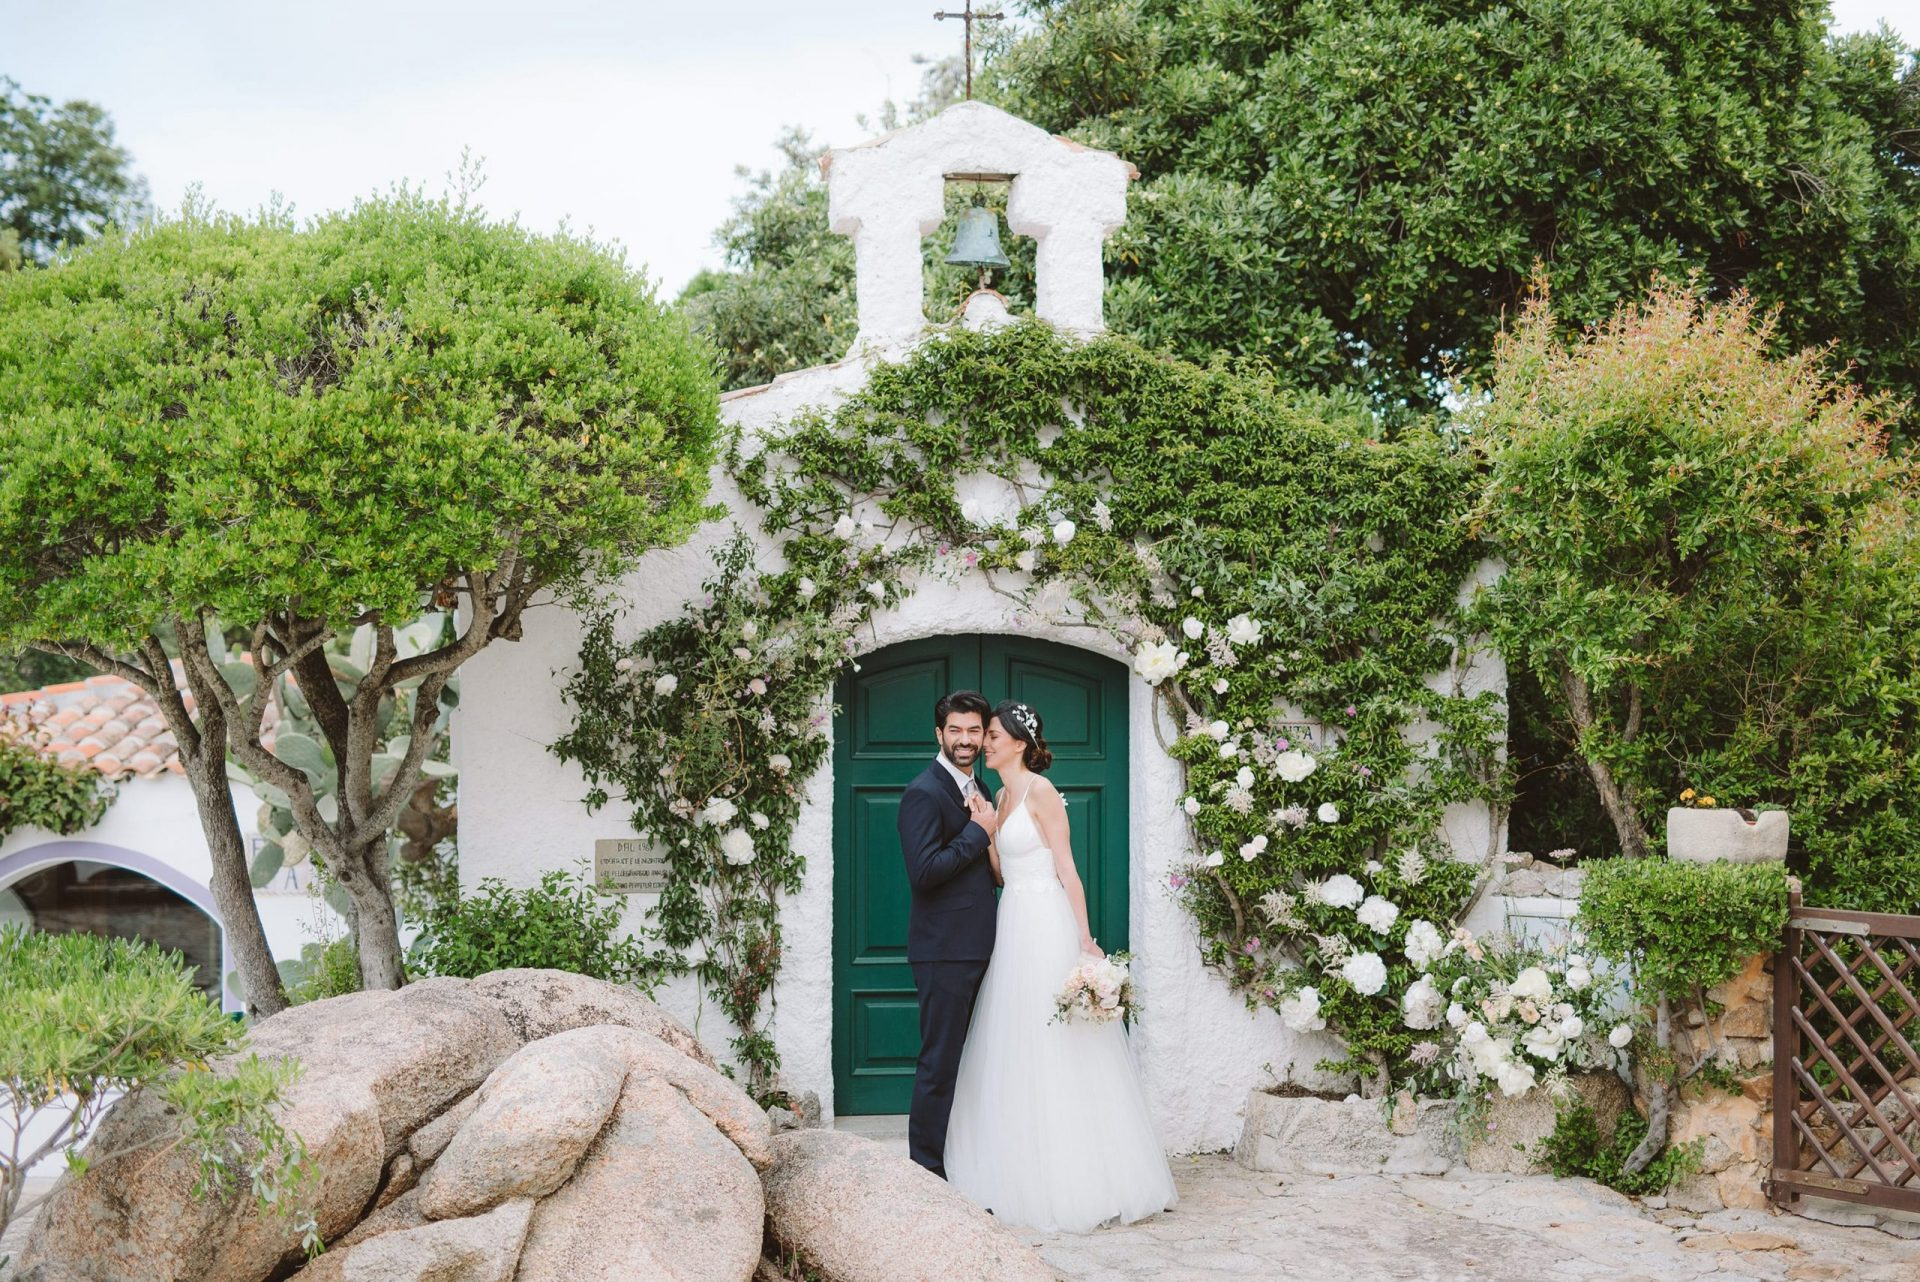 Elopement in Costa Smeralda, ceremony